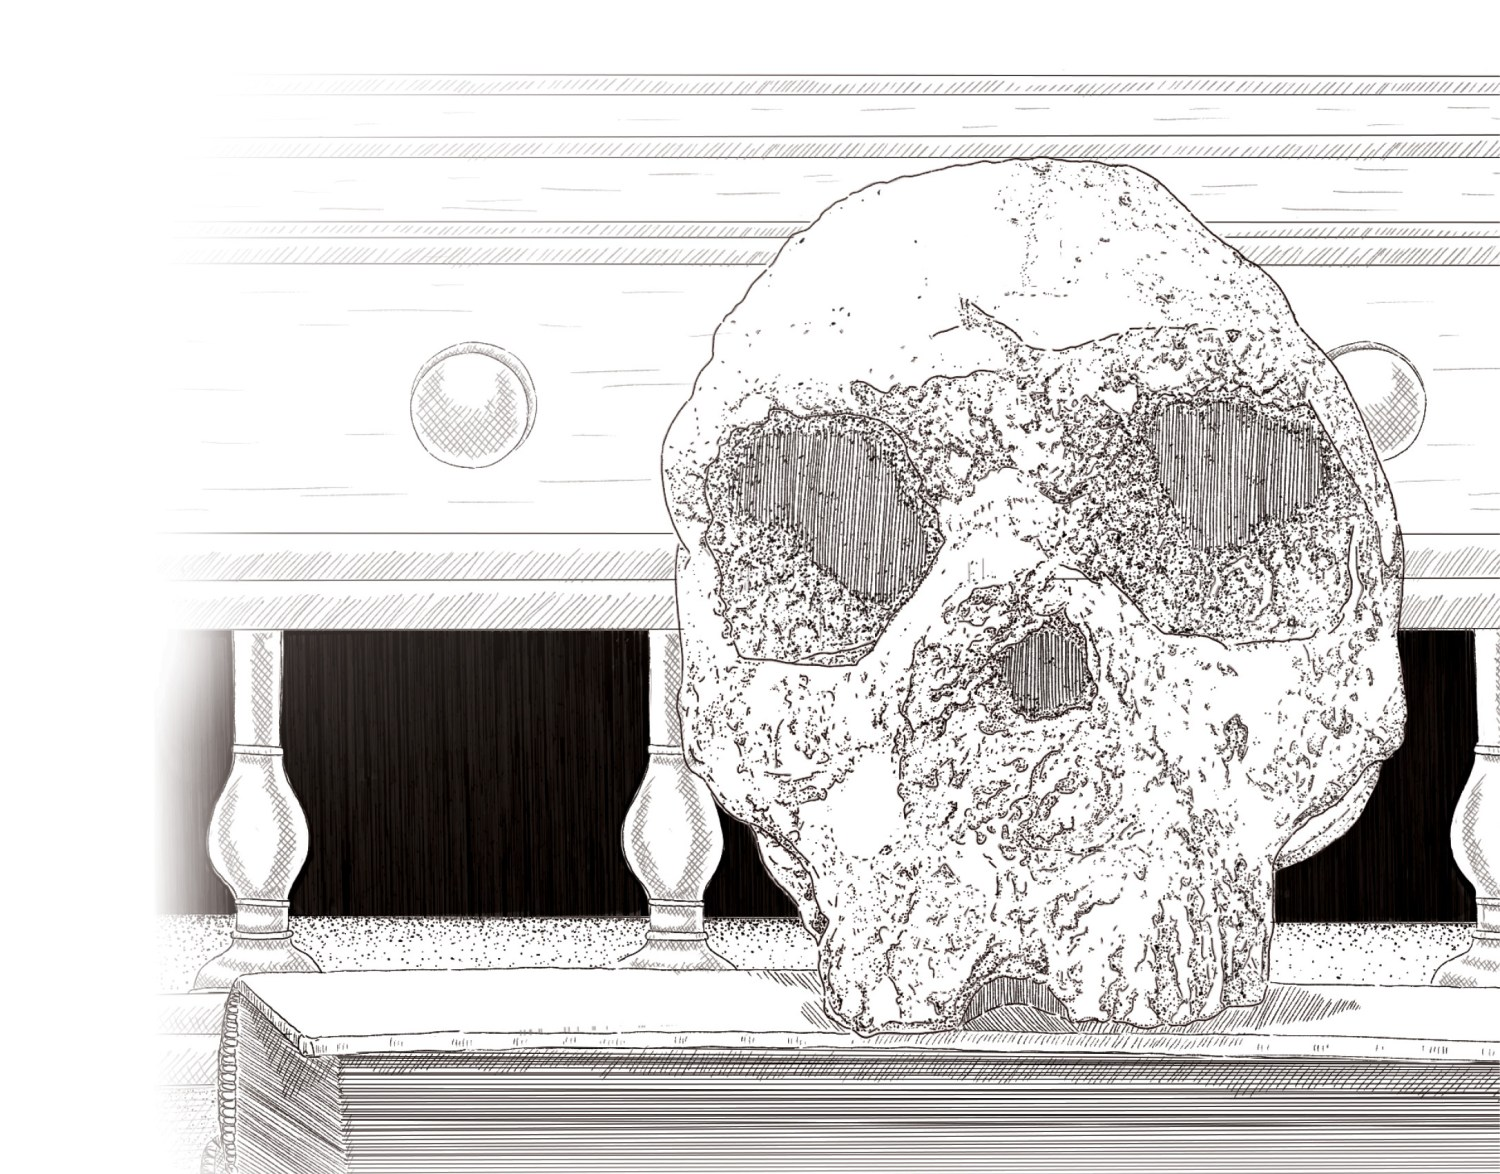 Above This drawing depicts the Forbes' Quarry skull (also known as Gibraltar 1), the first adult Neanderthal remains ever discovered. The skull was found in Gibraltar in 1848 eight years before the type specimen that gave Neanderthals their name was discovered in the Neander Valley, Germany and came from a woman aged at least 40. Today, it is held by the Natural History Museum in London.